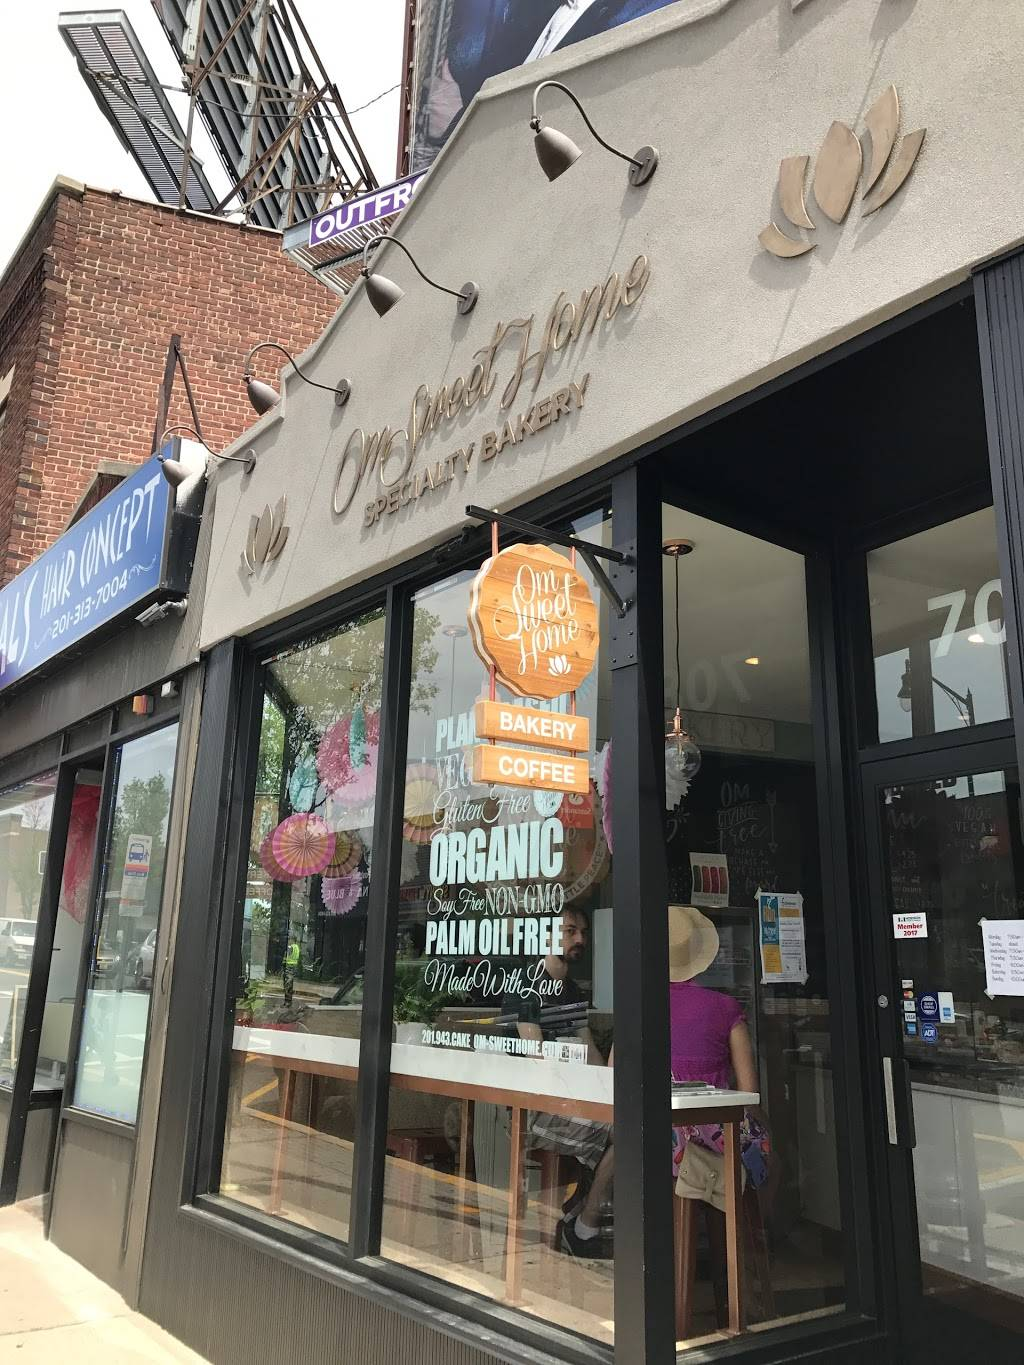 Om Sweet Home Specialty Bakery   bakery   708 Anderson Ave, Cliffside Park, NJ 07010, USA   2019432253 OR +1 201-943-2253